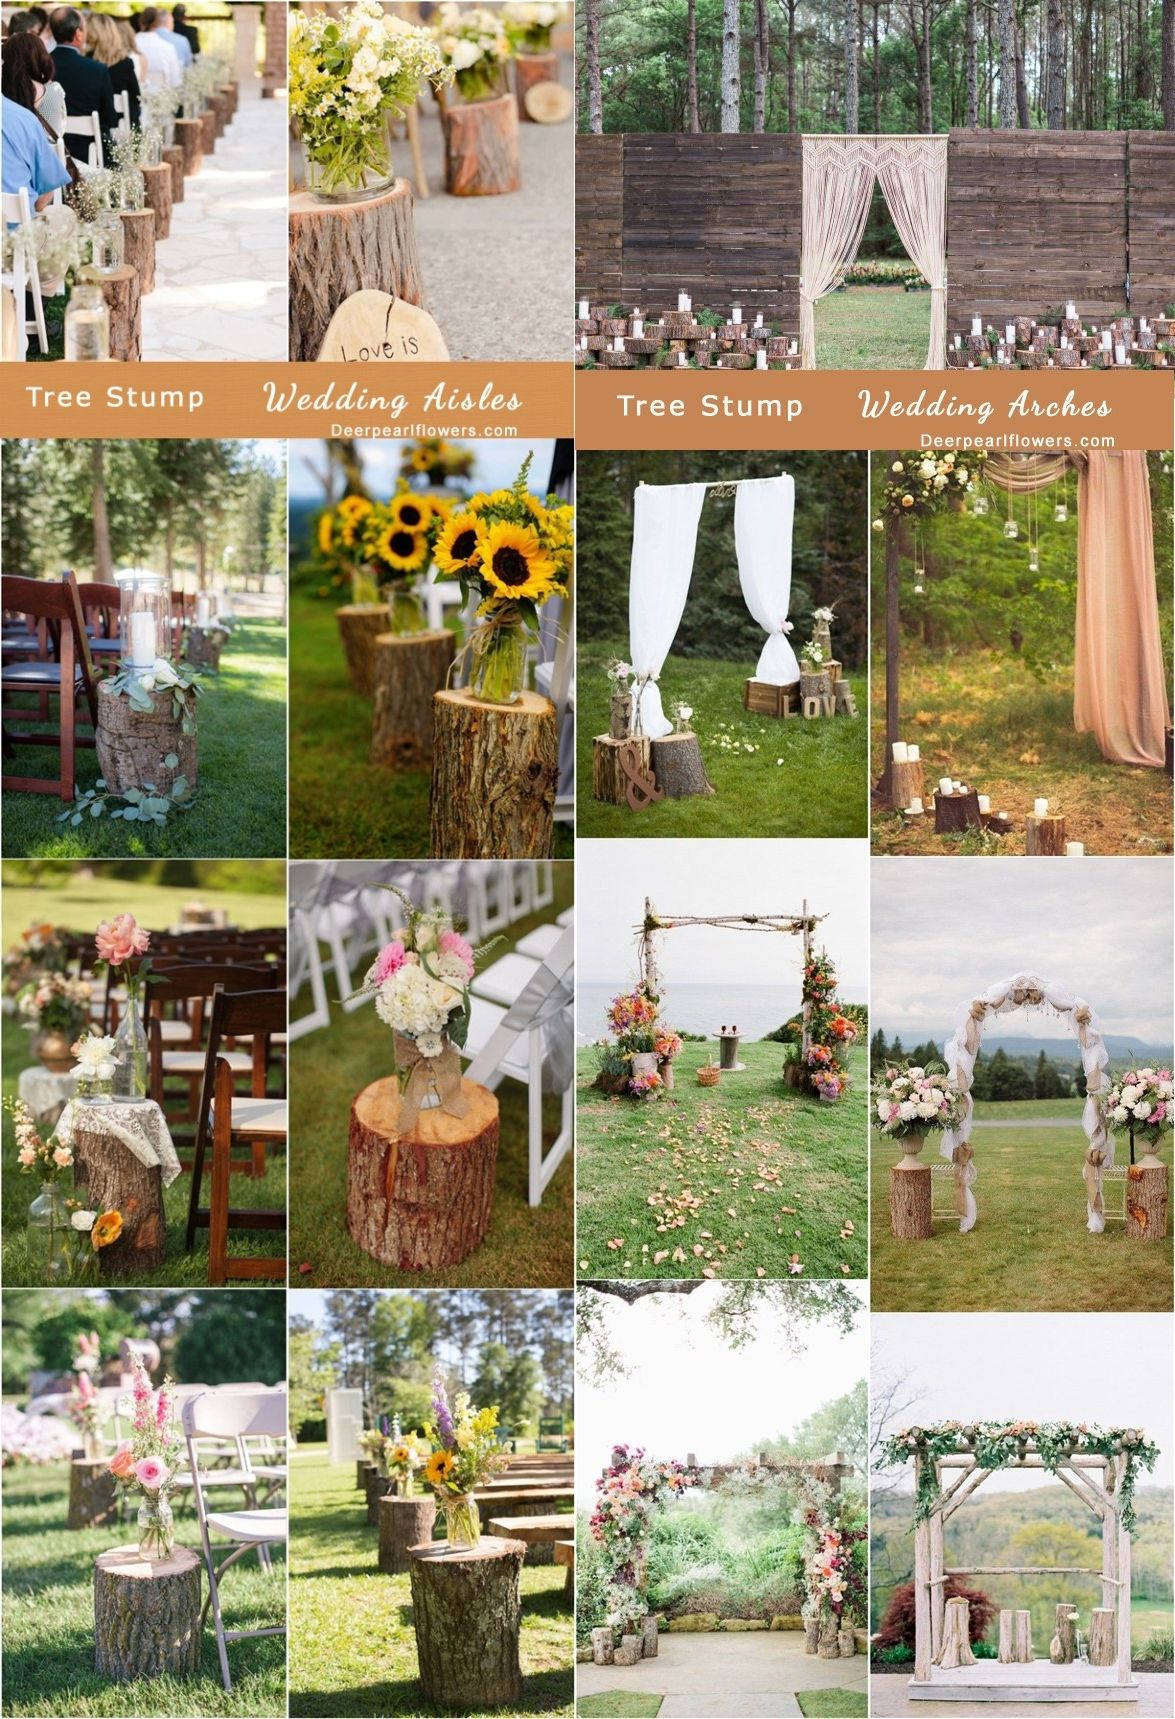 Country wedding decoration ideas  Rustic Woodsy Wedding Trend   Tree Stump  Woodsy wedding